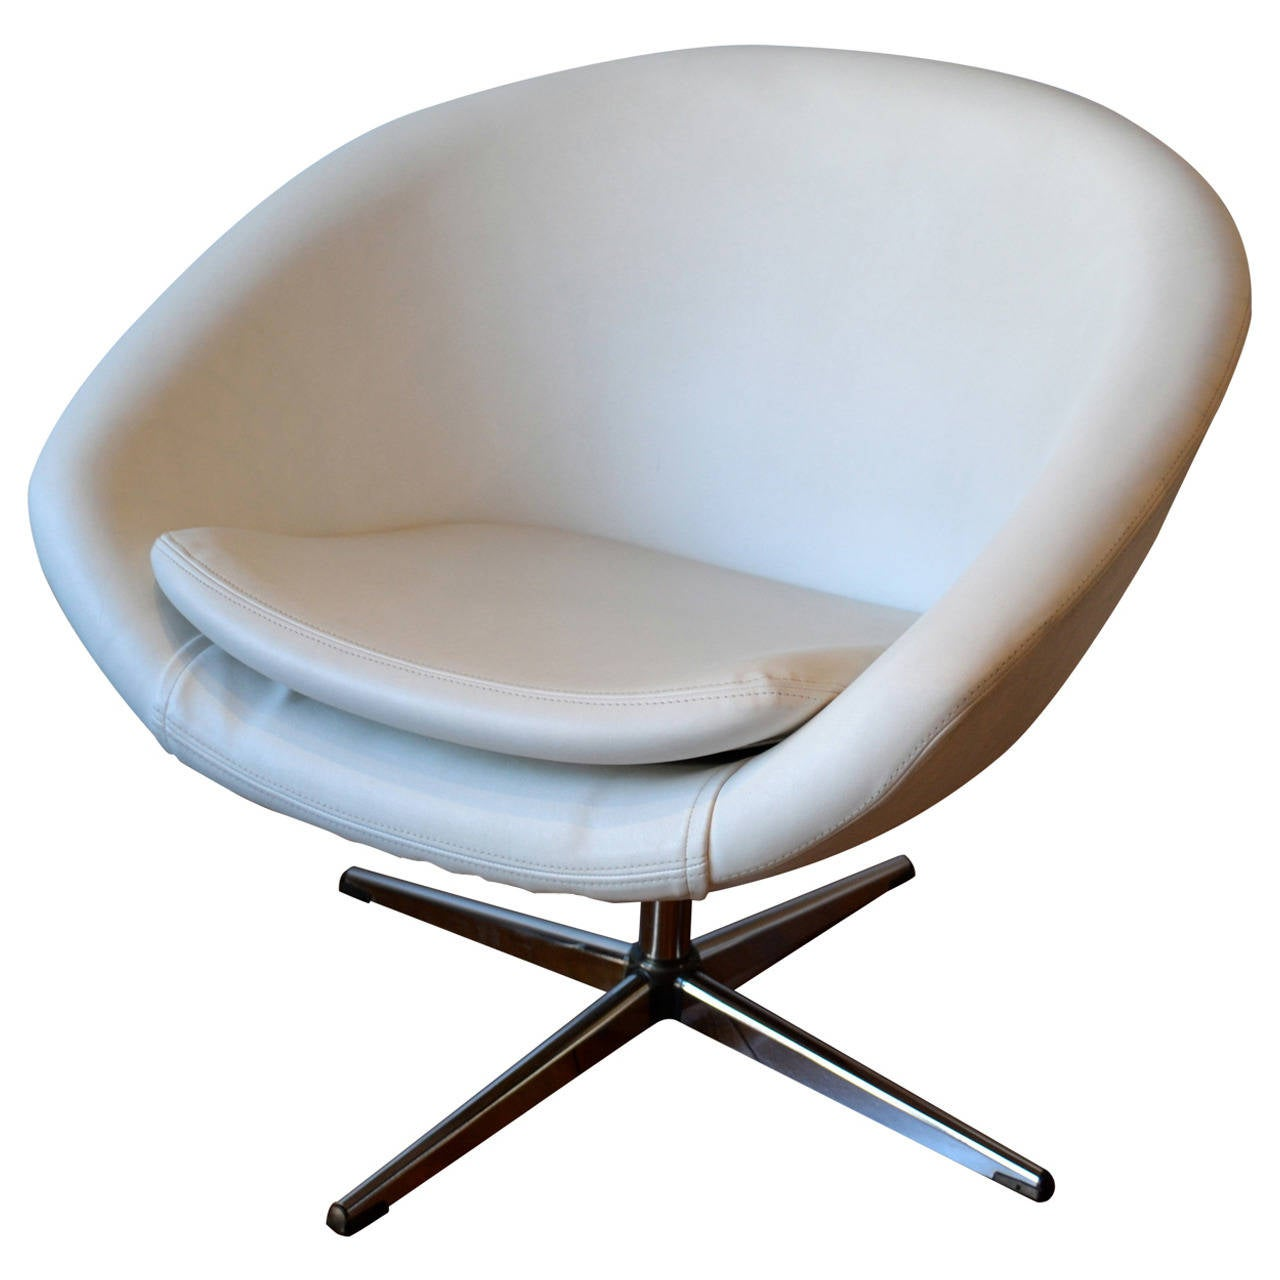 Beau Swivel Egg Chair In White Leather With Chrome Base, 1960u0027s For Sale